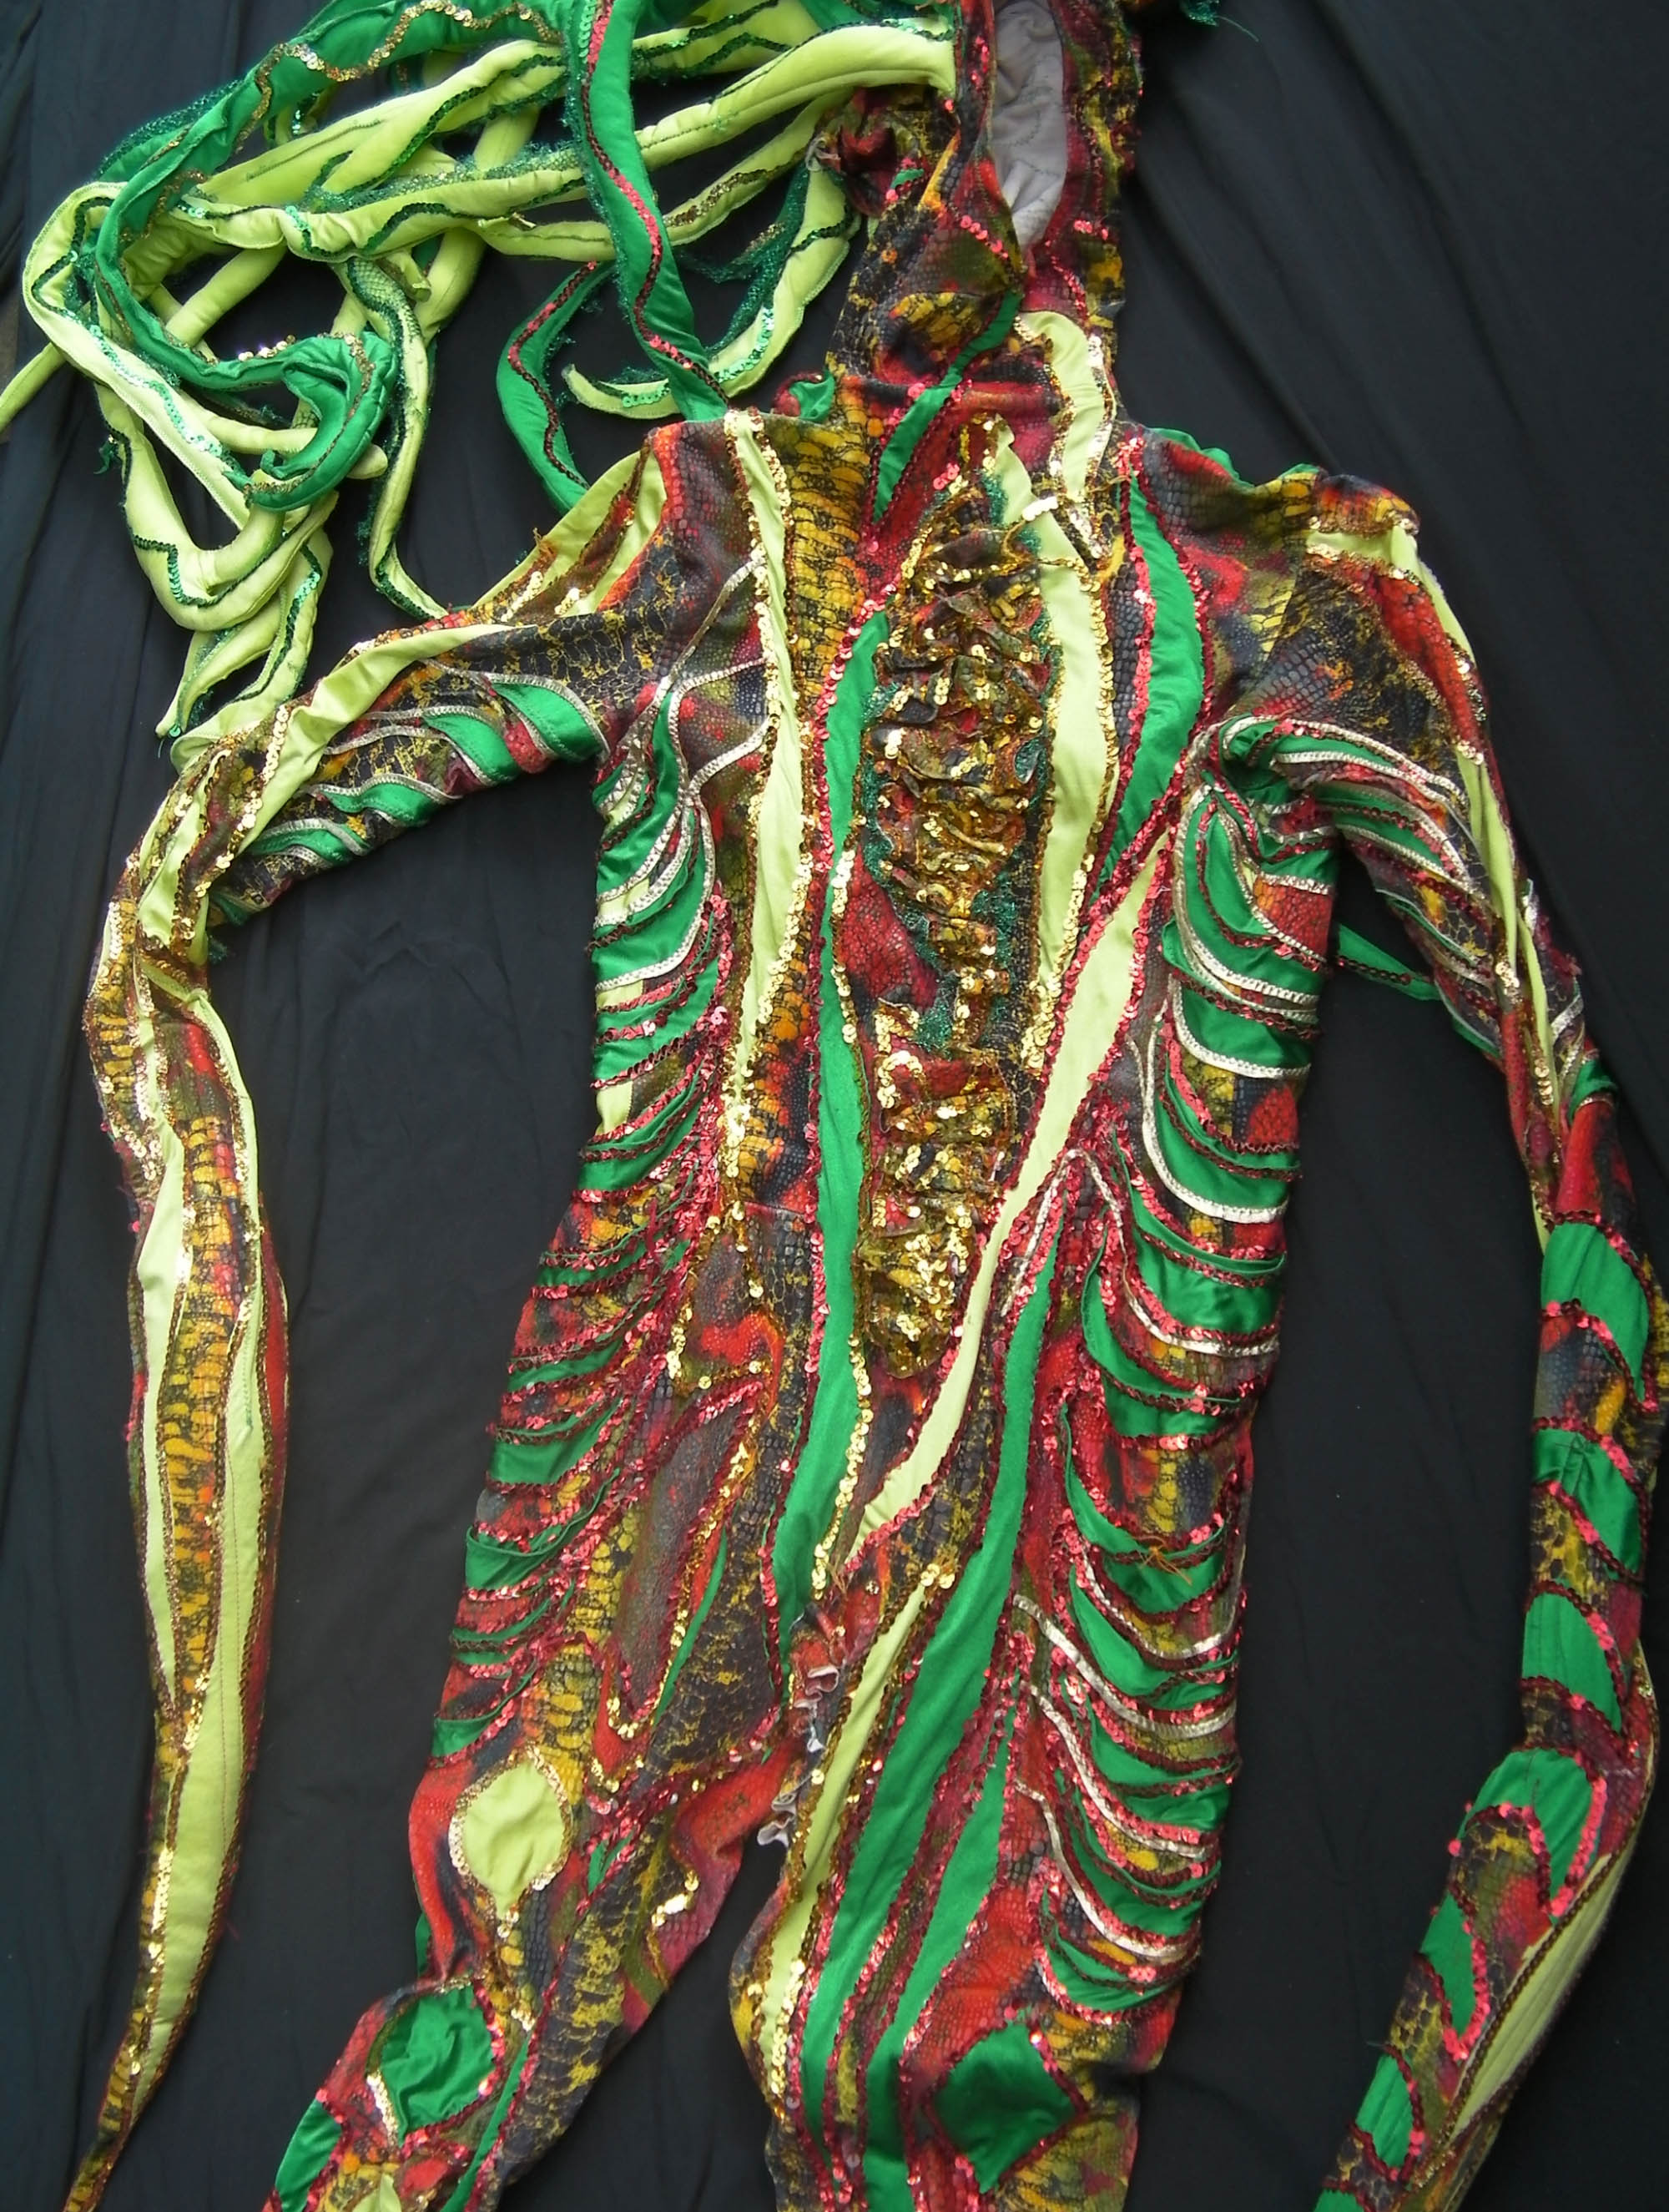 The costume 'Snake woman' from the show 'Rubicon'